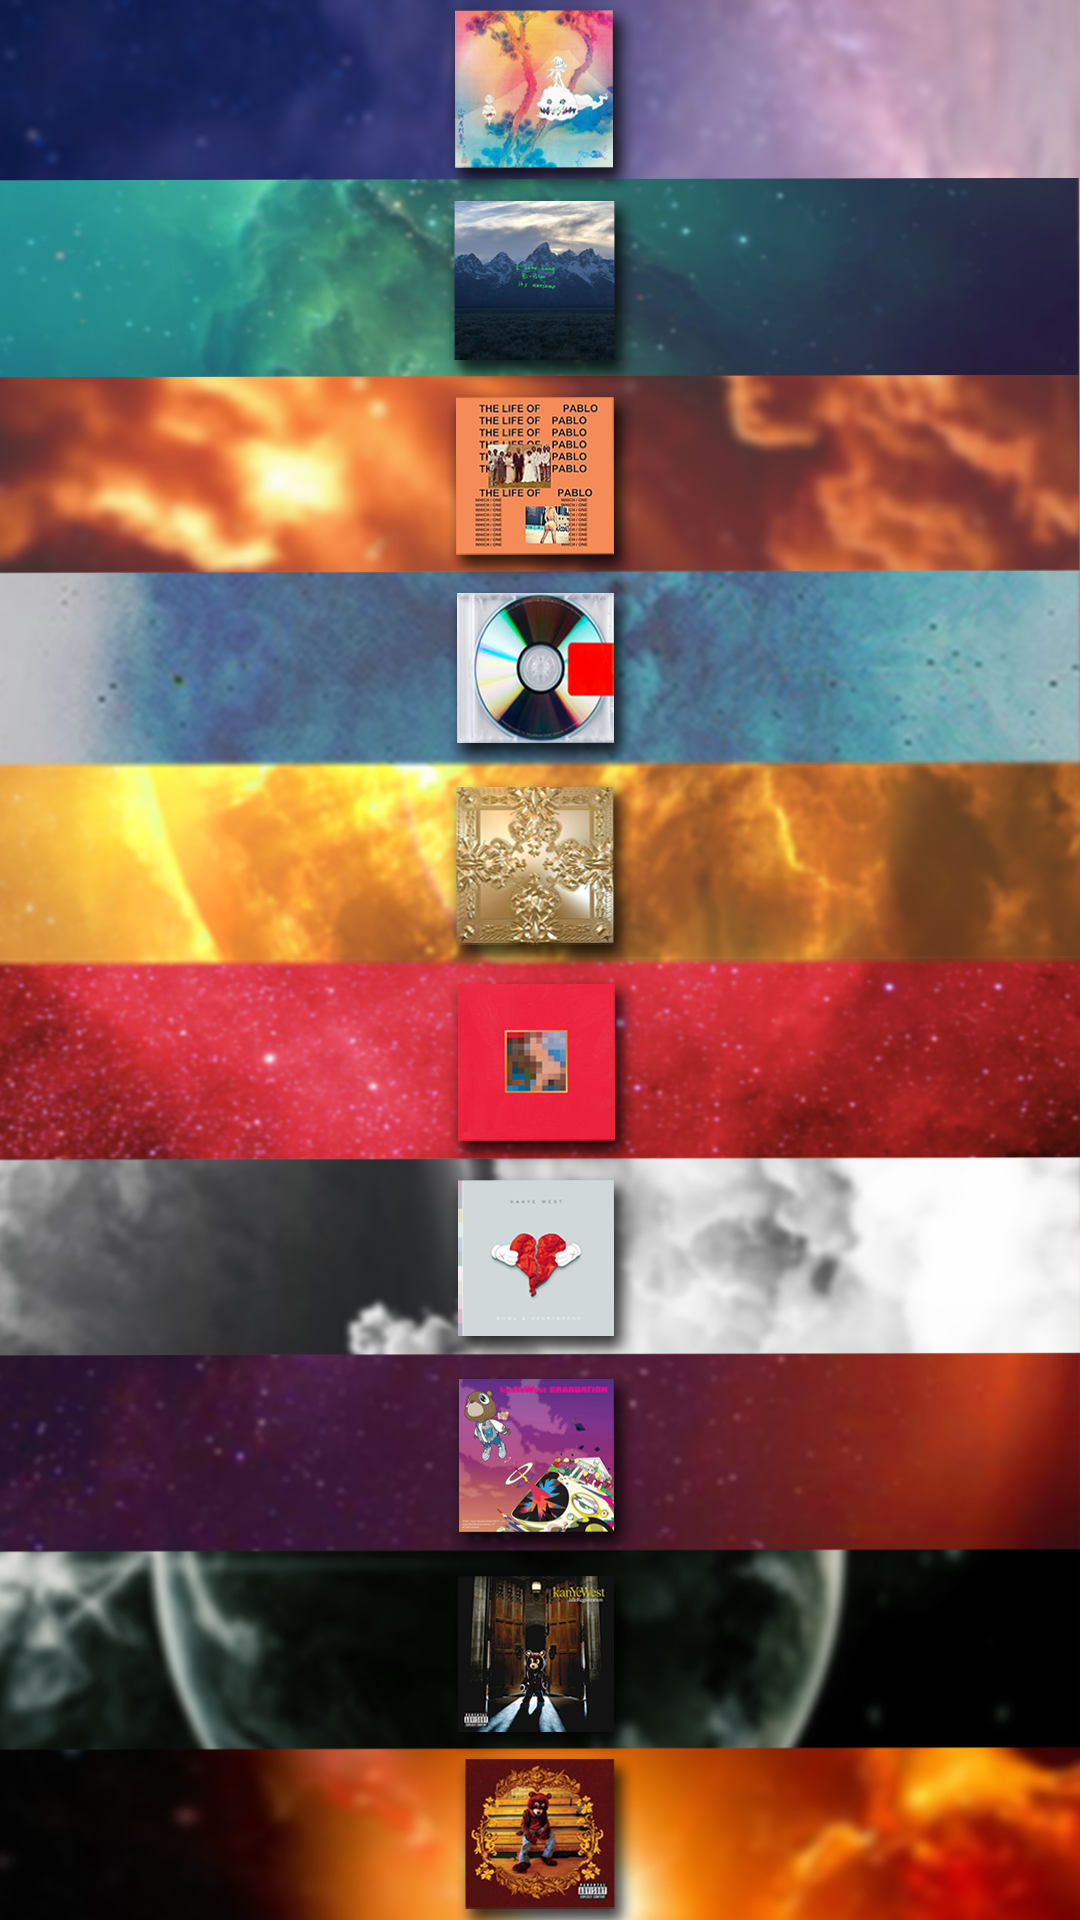 Kanye West albums Iphone wallpaper as requested with wtt